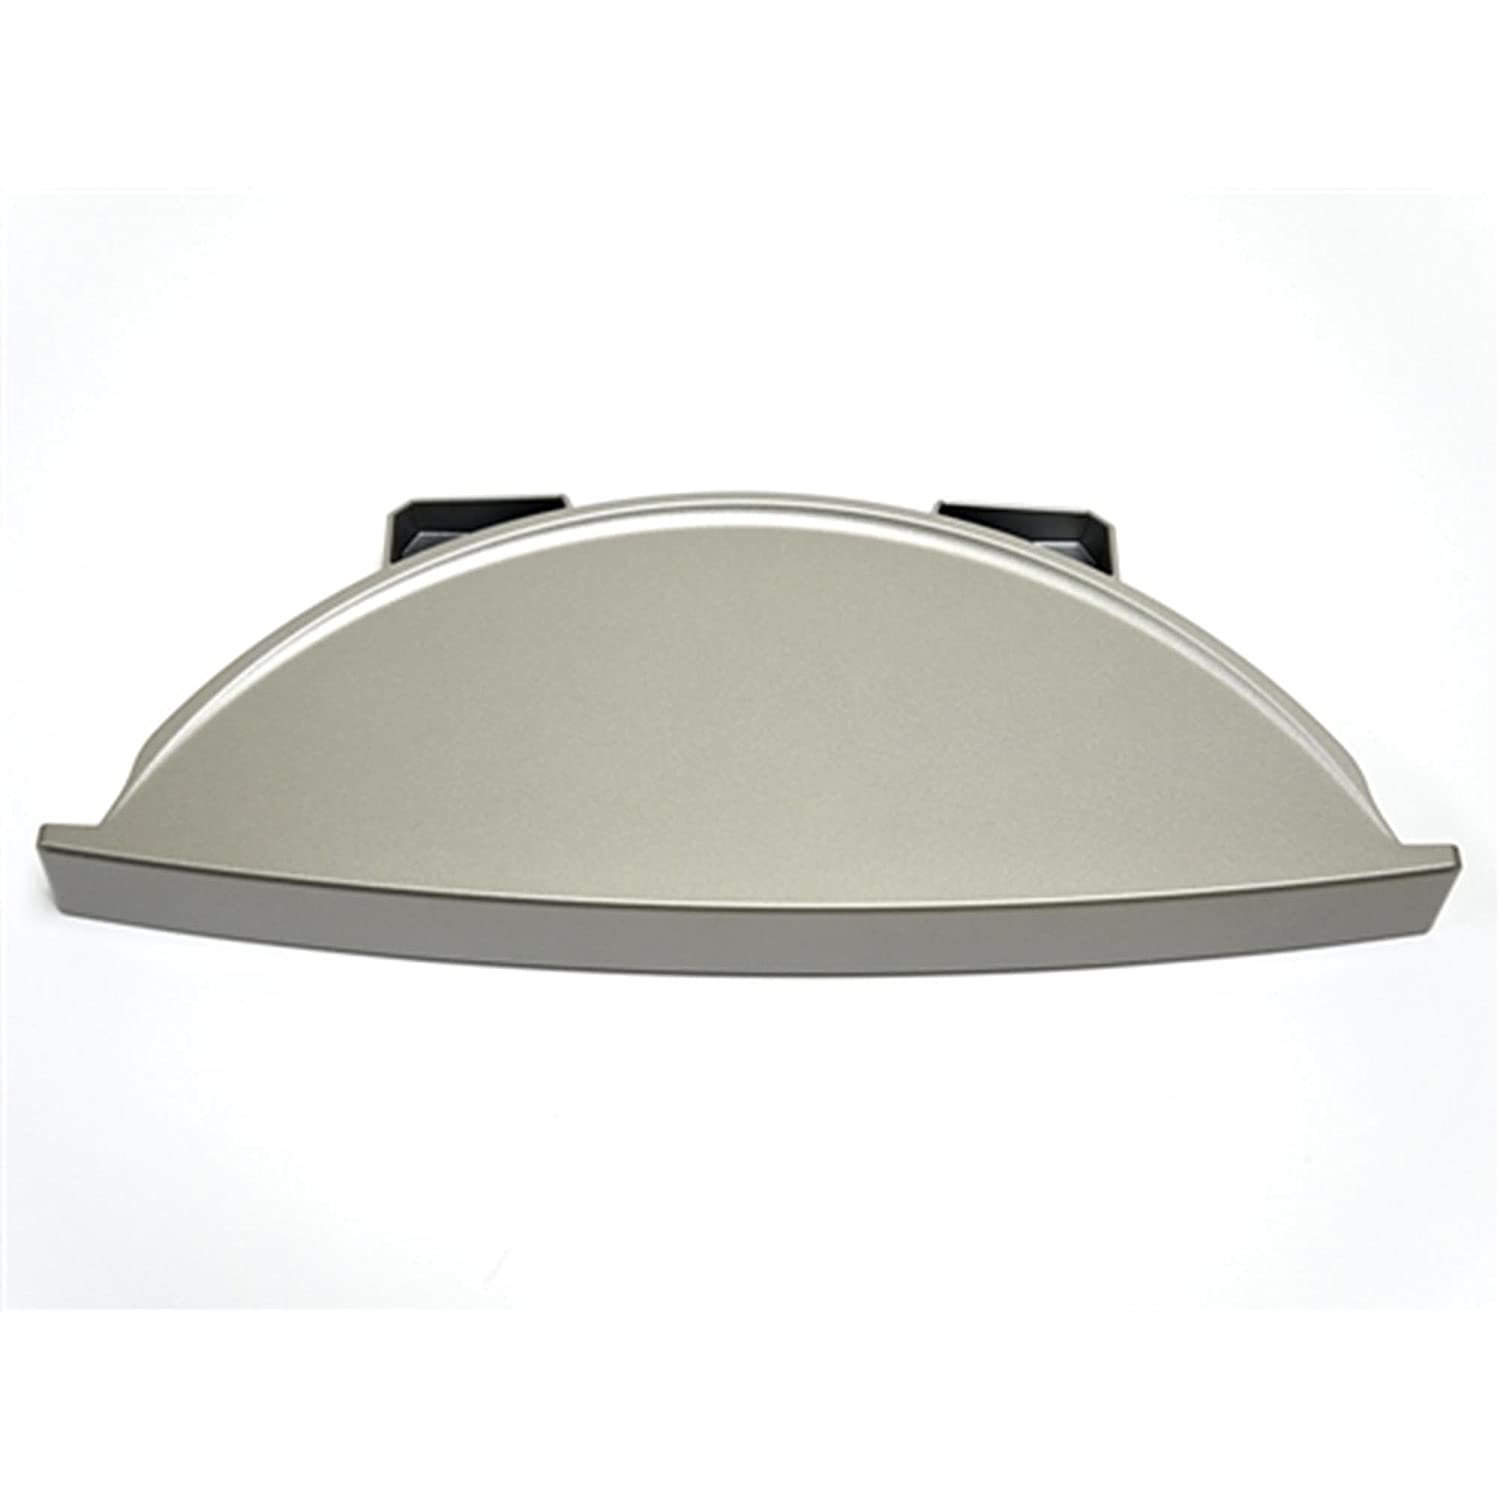 Ge WR17X23725 Drip Tray Ss Genuine Original Equipment Manufacturer (OEM) Part Stainless